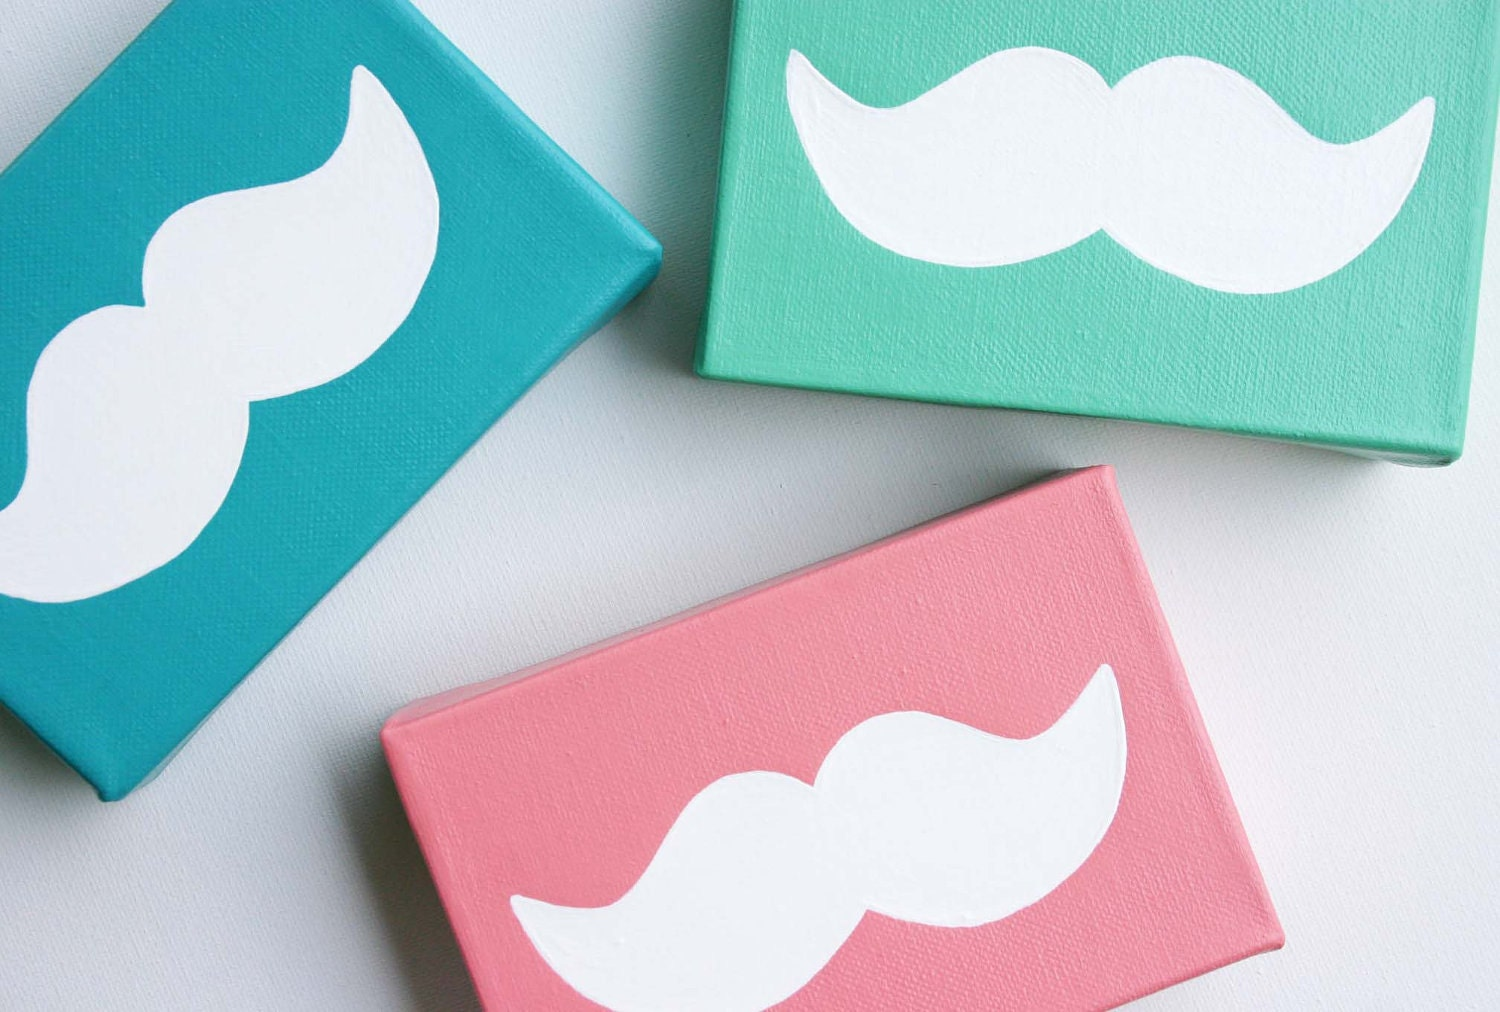 Mint Green, Seafoam Mustache - Affordable Original Painting, Wall Art, Home Decor (4 x 6 Canvas)